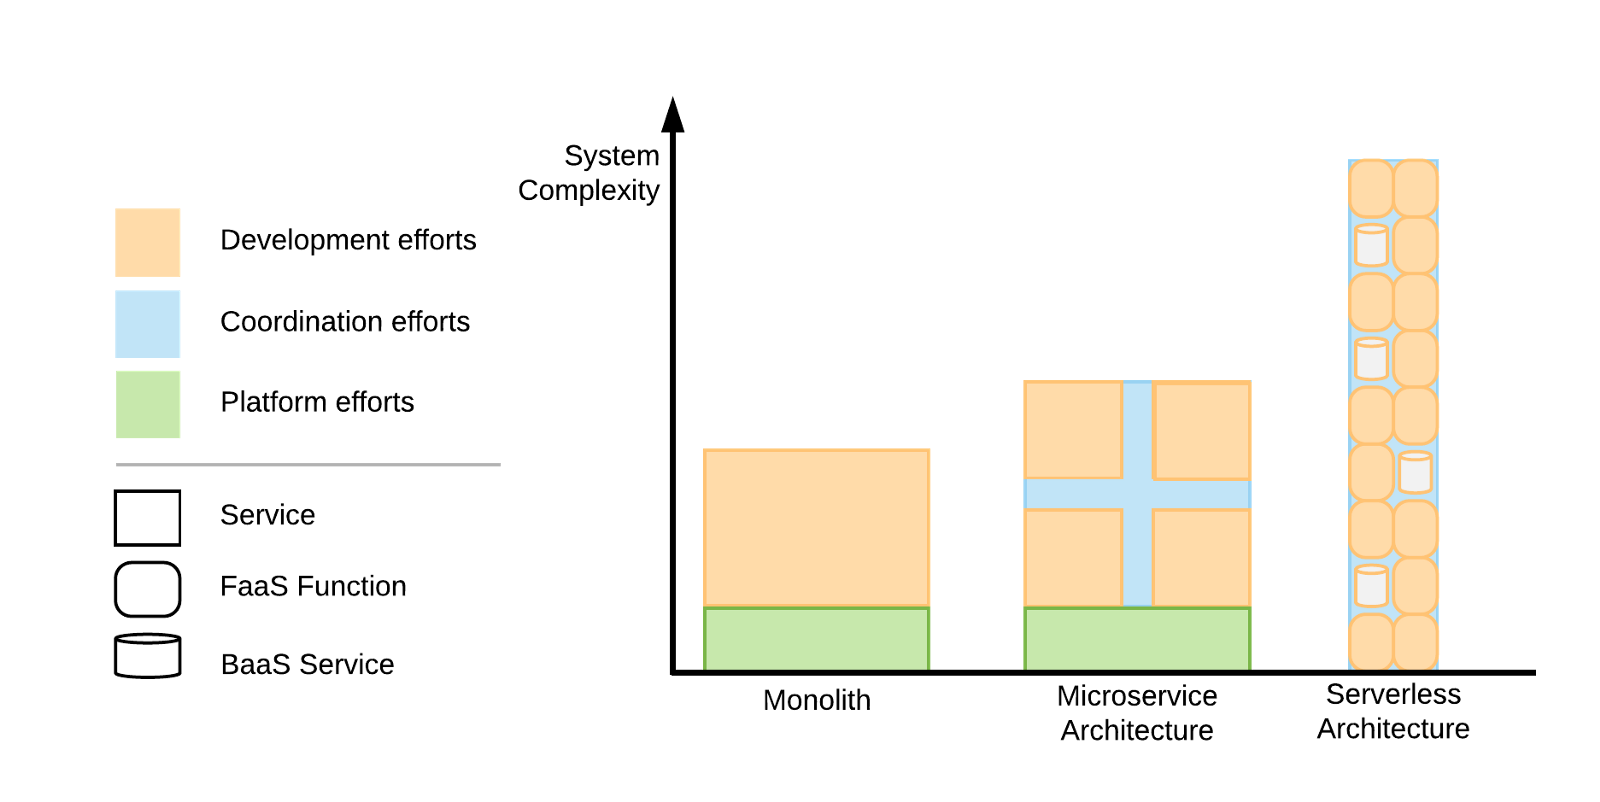 A comparison between Monolith, Microservice- and Serverless Architectures by development, coordination and platform effort